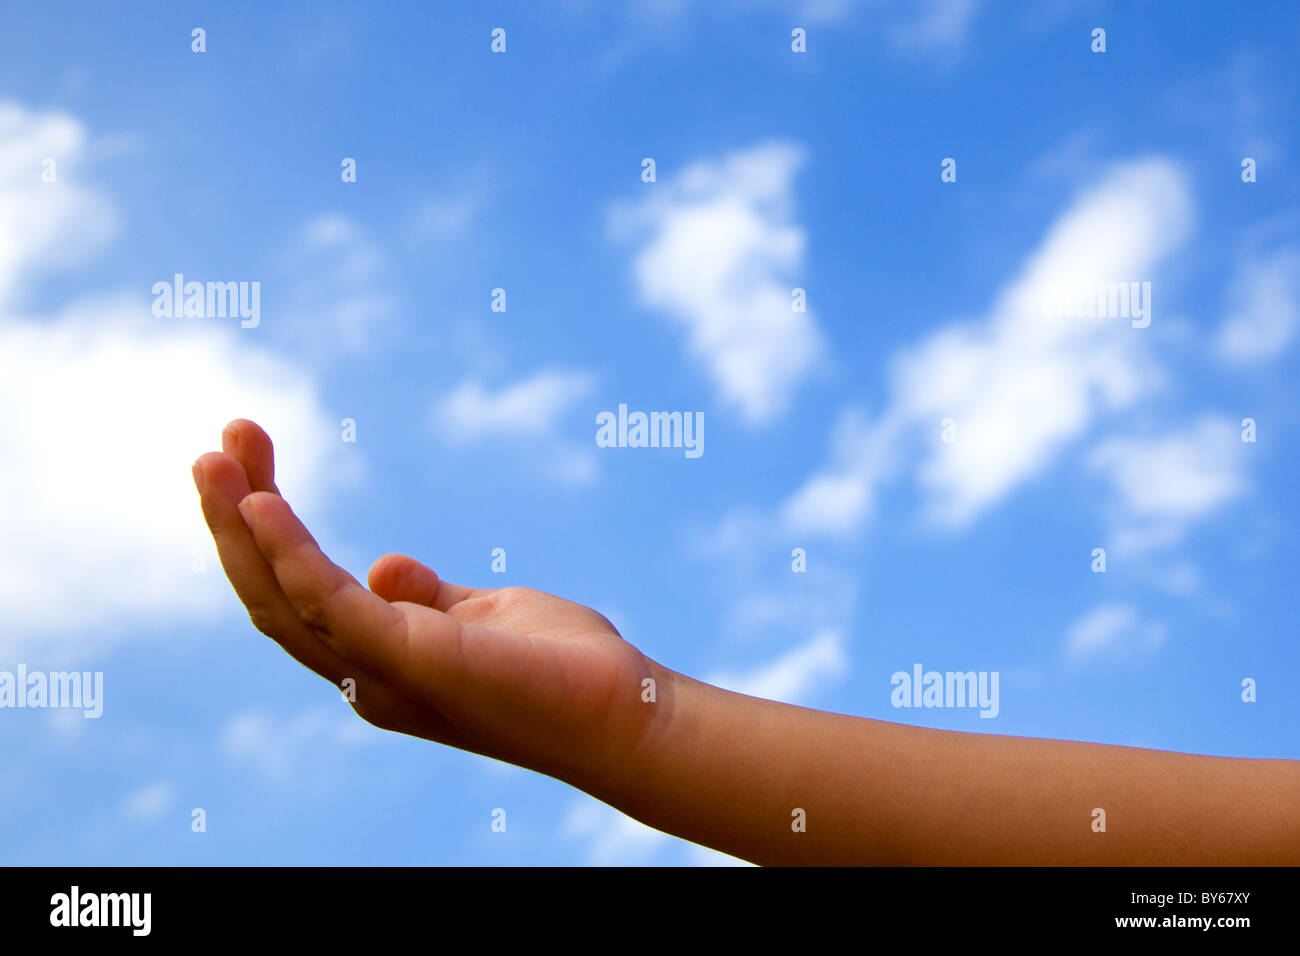 Open hand of a child against a cloudy blue sky Stock Photo